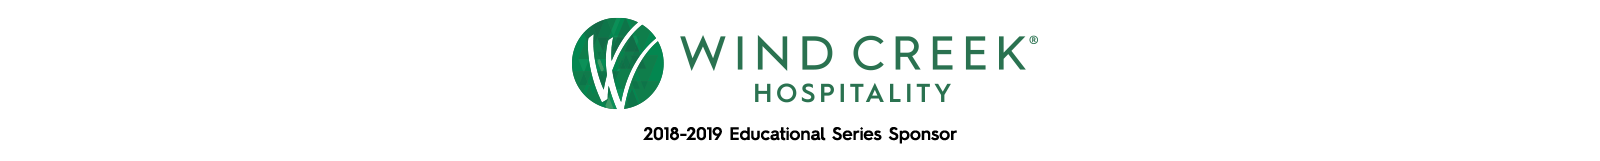 Thank you  Wind Creek Hospitality  for your continuous support in funding our workshops.